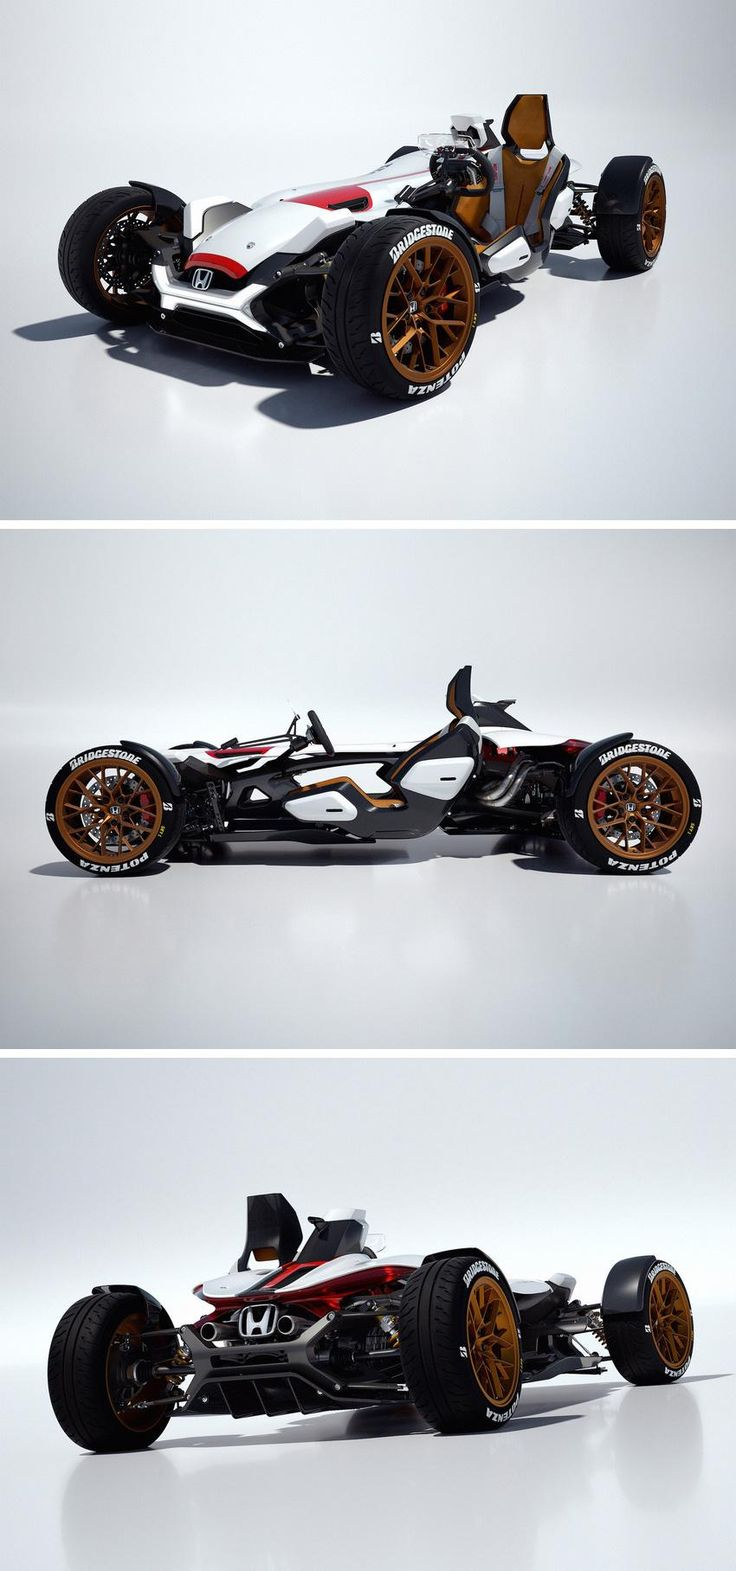 The Honda Project 2&4 combines the stability of a car with the stripped-down simplicity of a two-wheeler